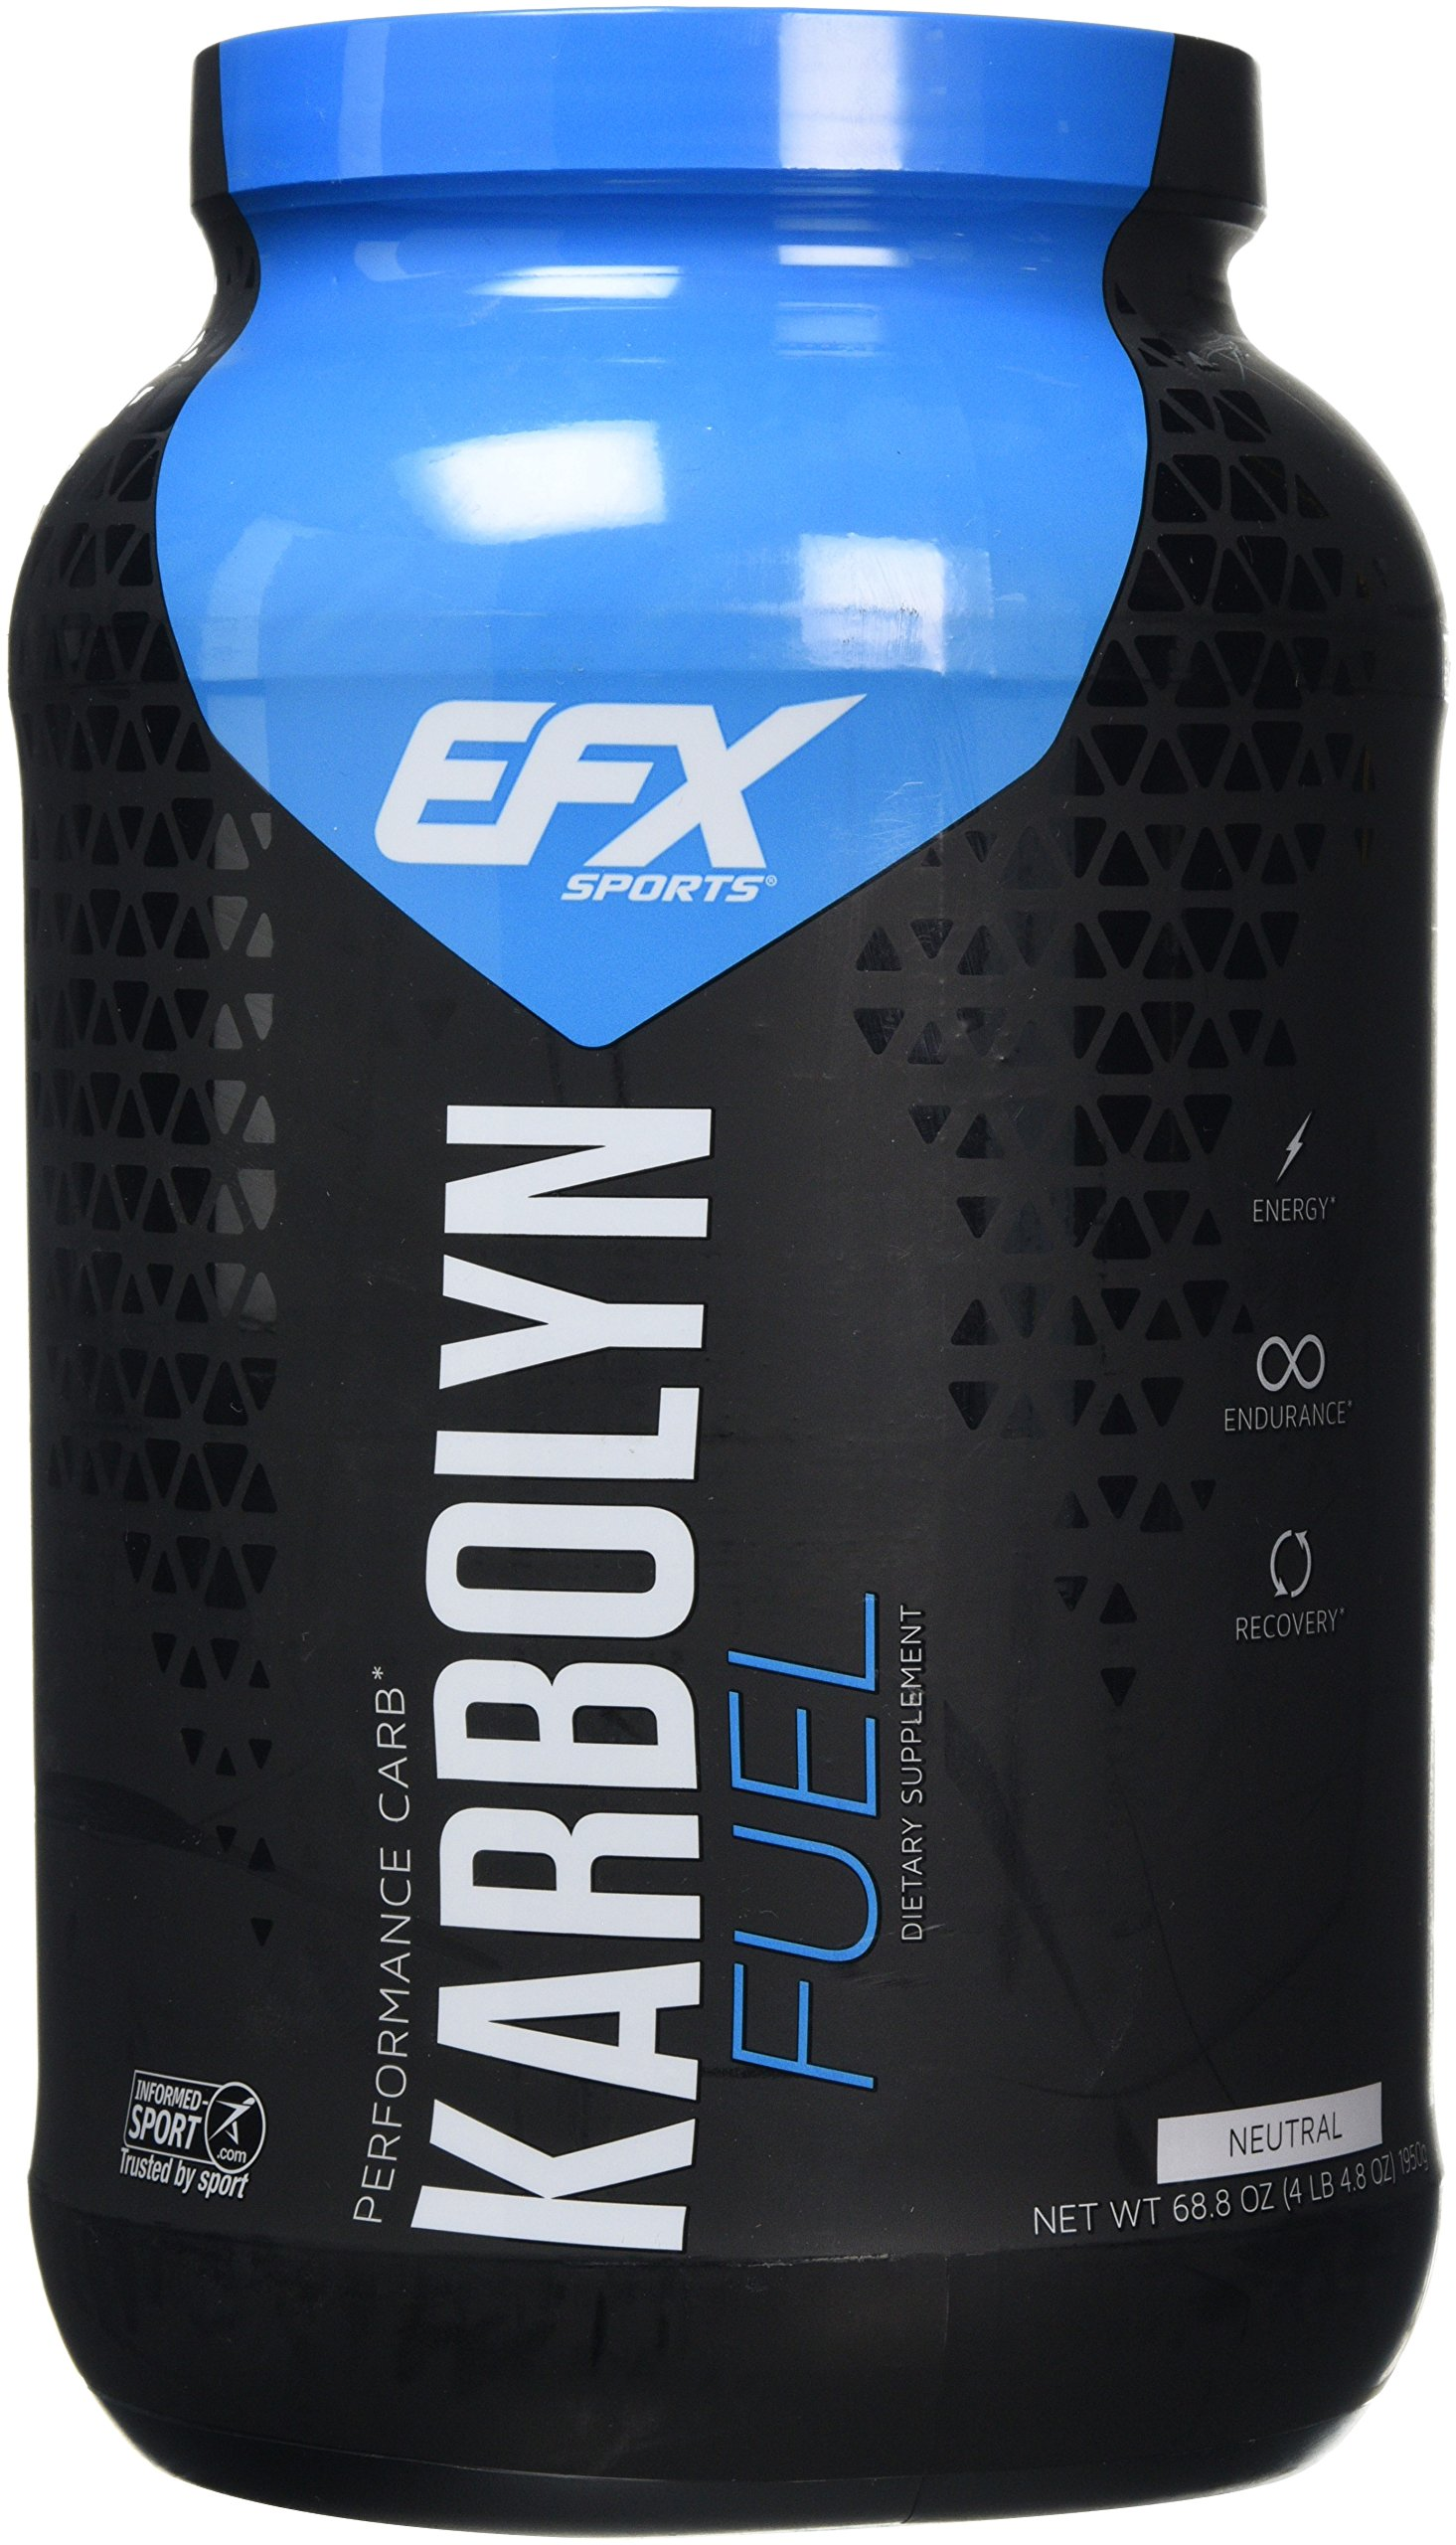 81bgXt5en3L - All American EFX Karbolyn Sports Supplement, 2 kg, Unflavoured